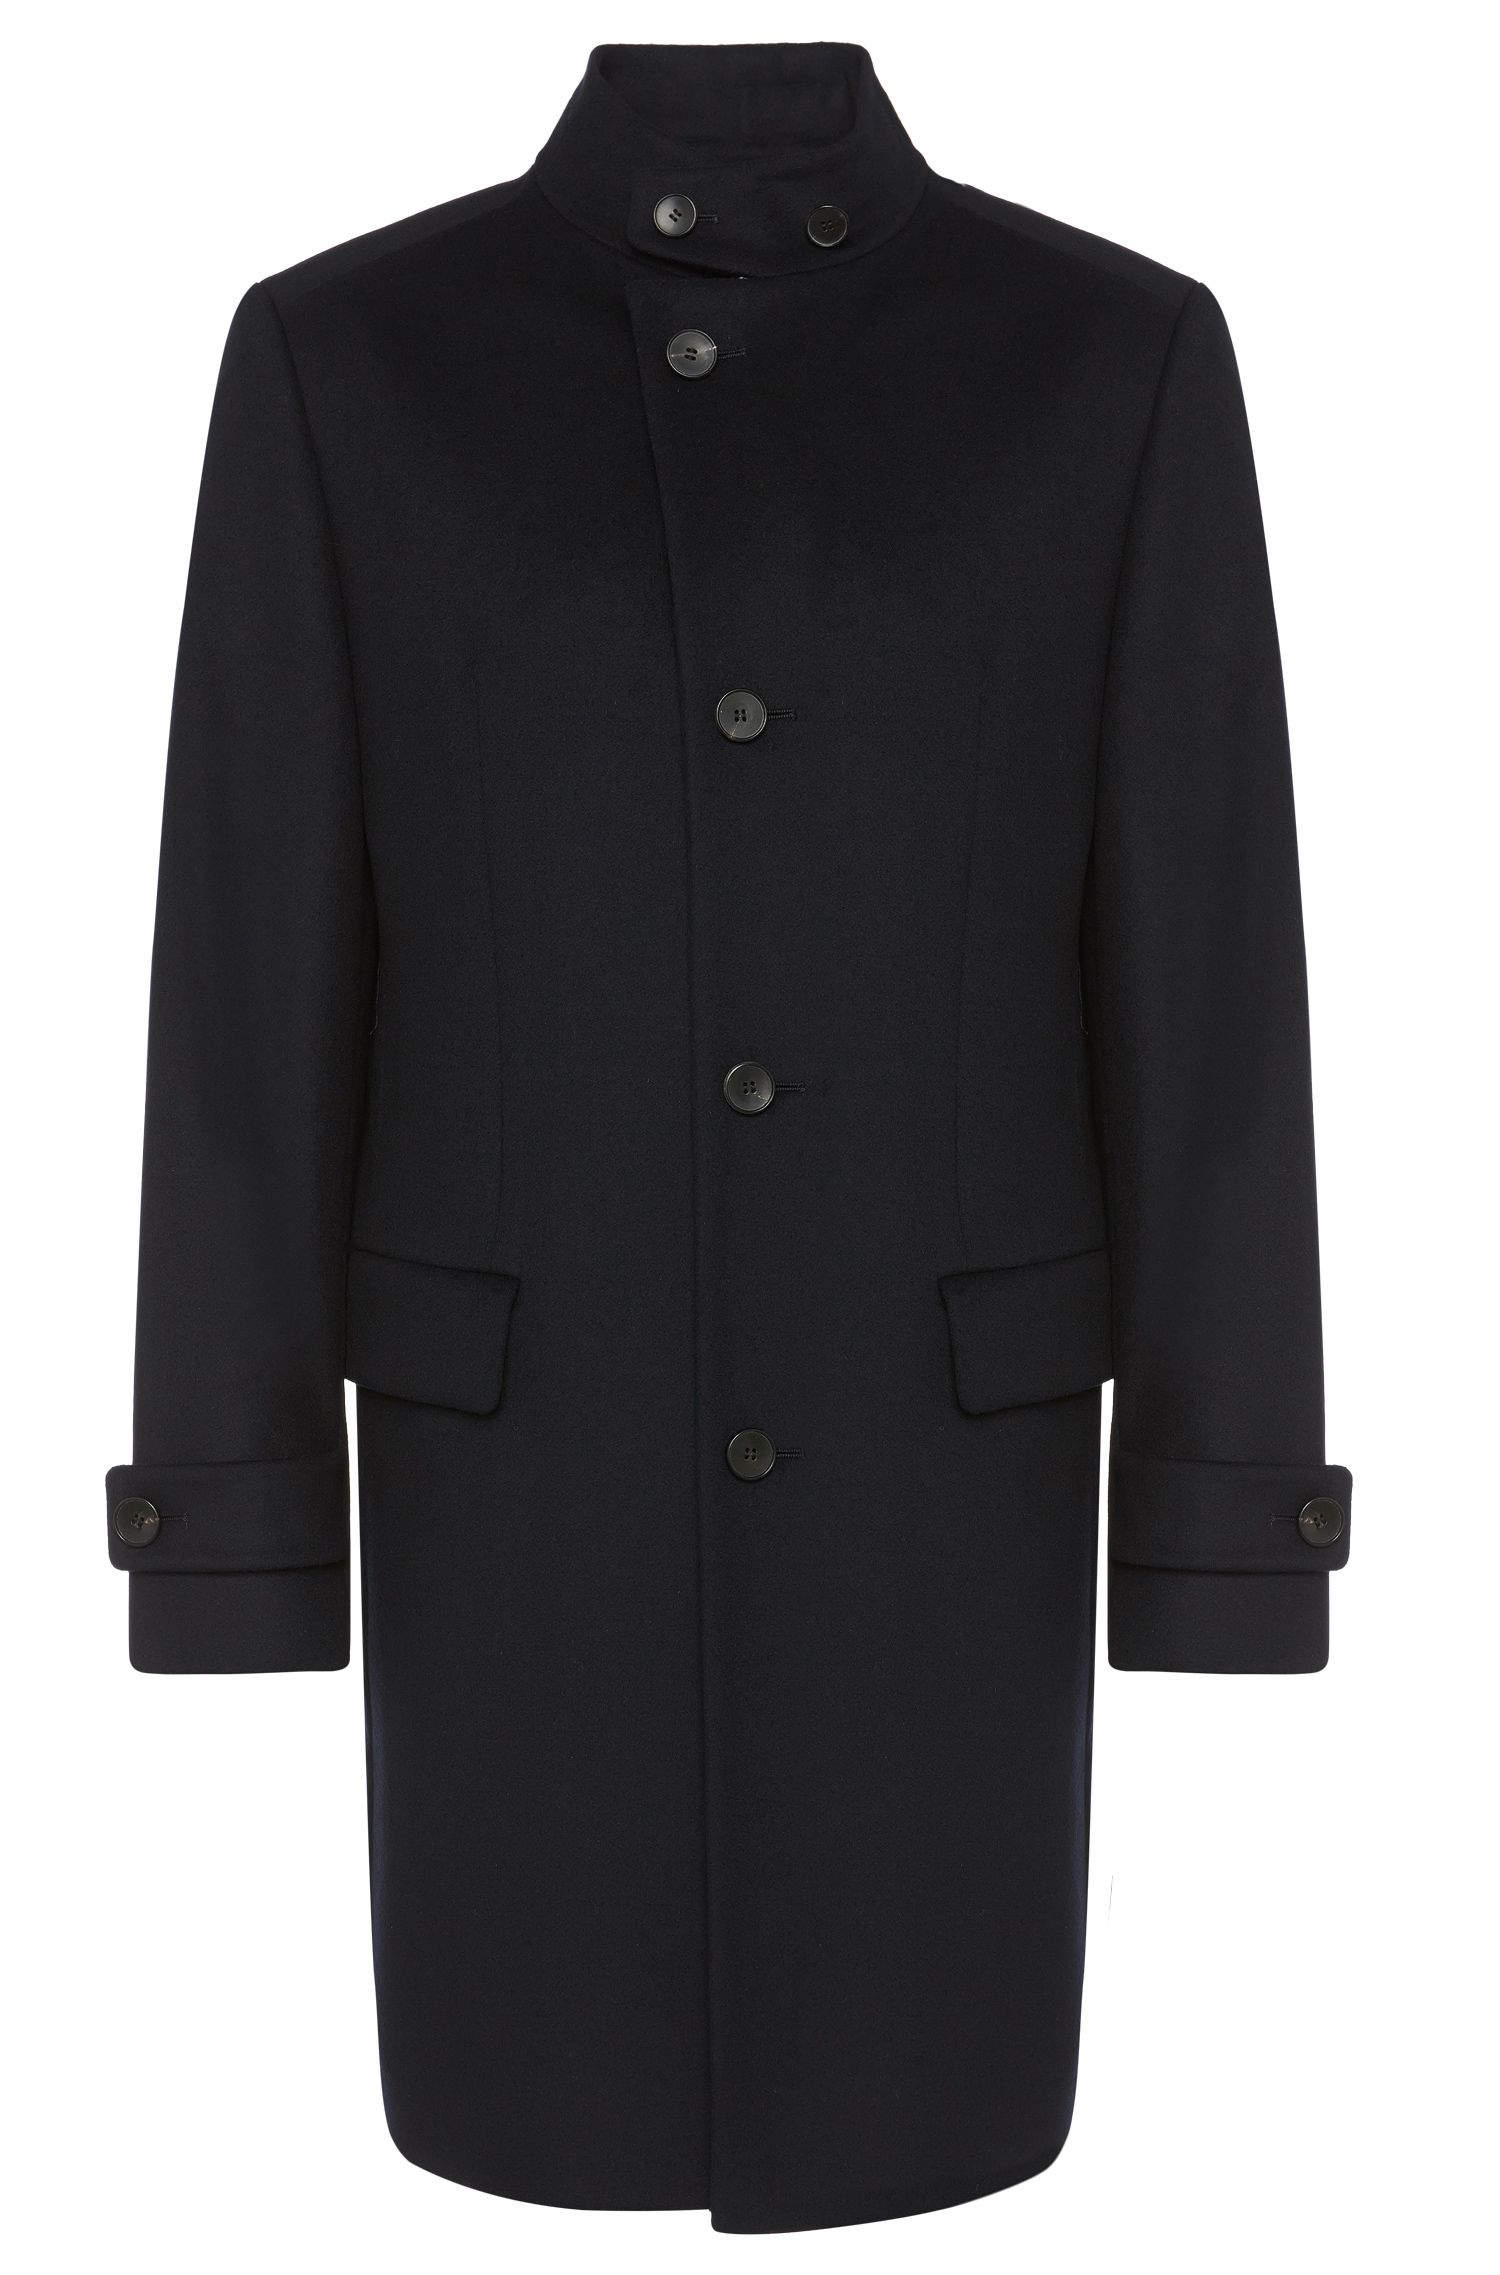 'Sintrax' | Virgin Wool Cashmere Three-Quarter Coat